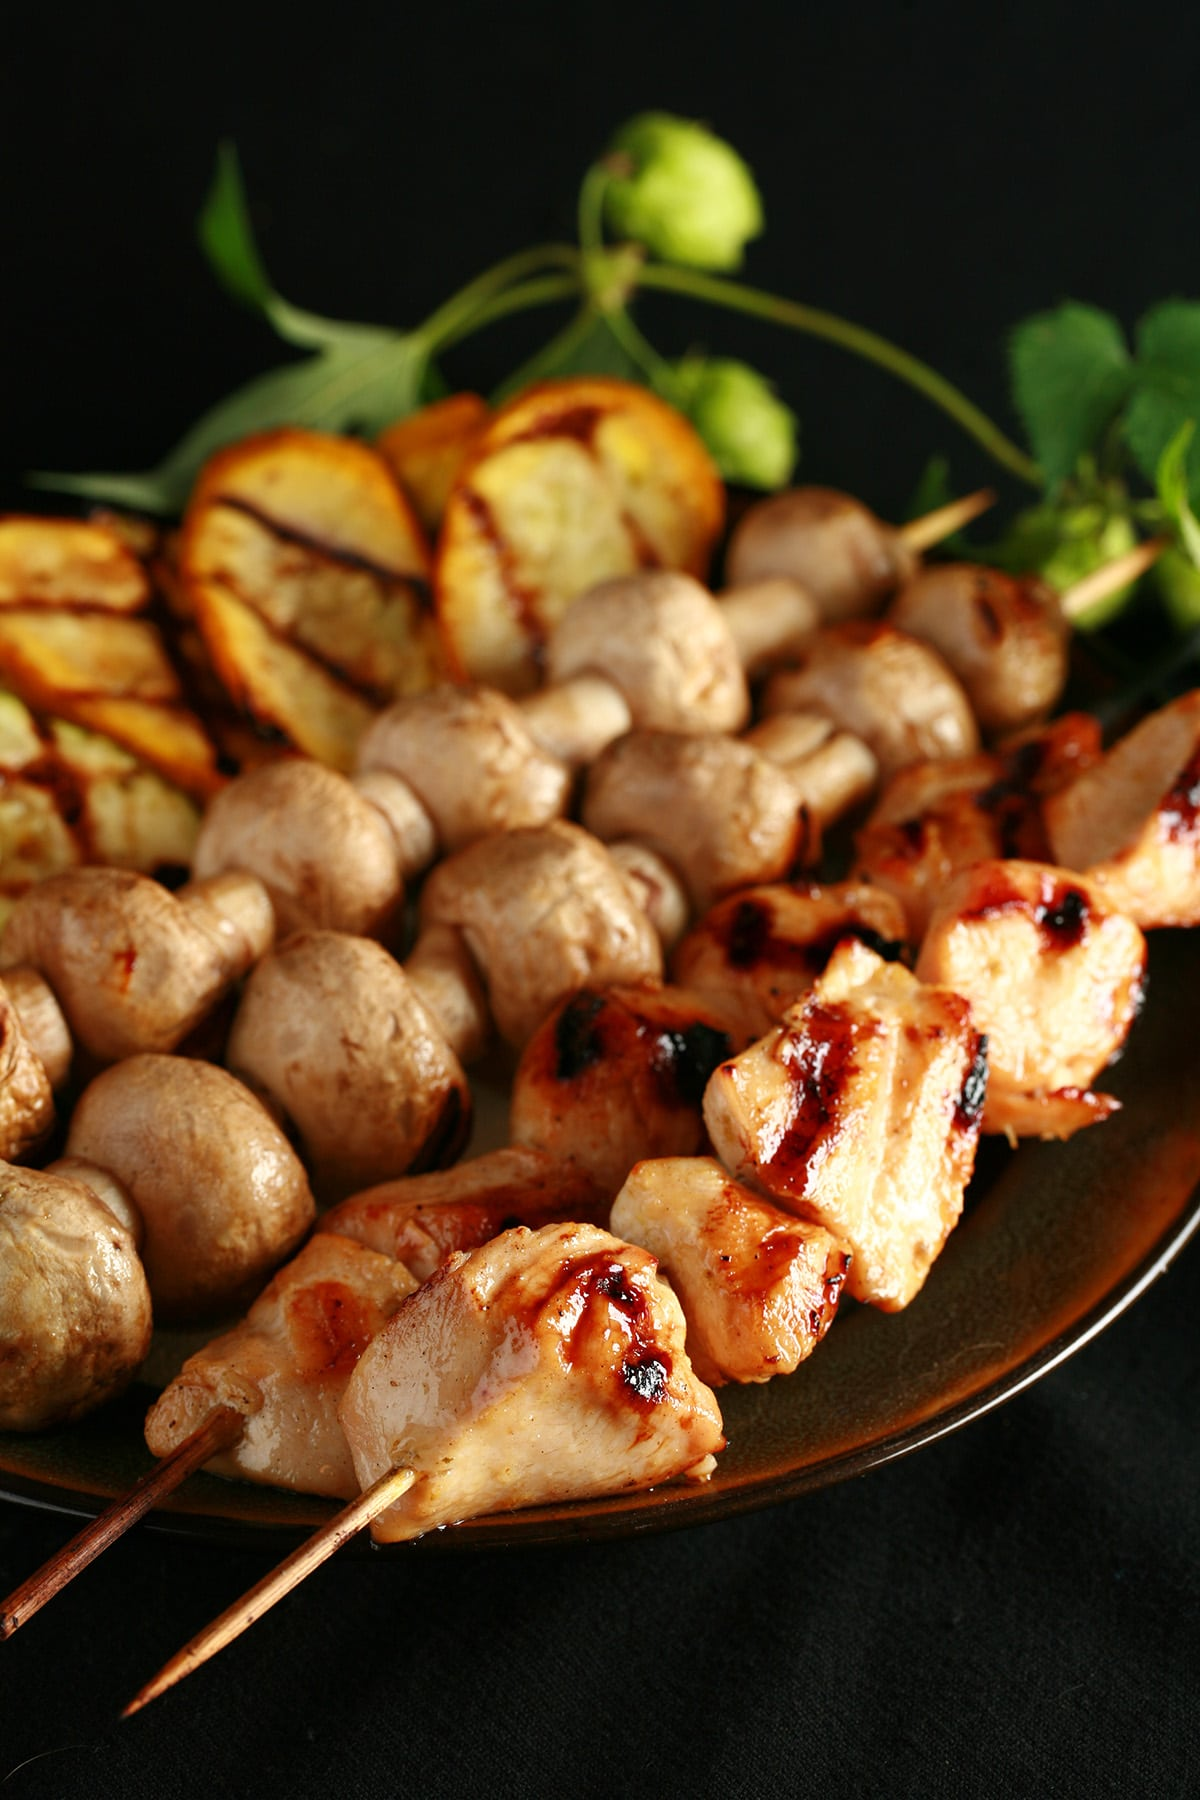 Skewers of hop-marinated grilled chicken, mushrooms, and zucchini are lined up on a brown platter. A hop bine with flowers wraps around the back end of the platter.